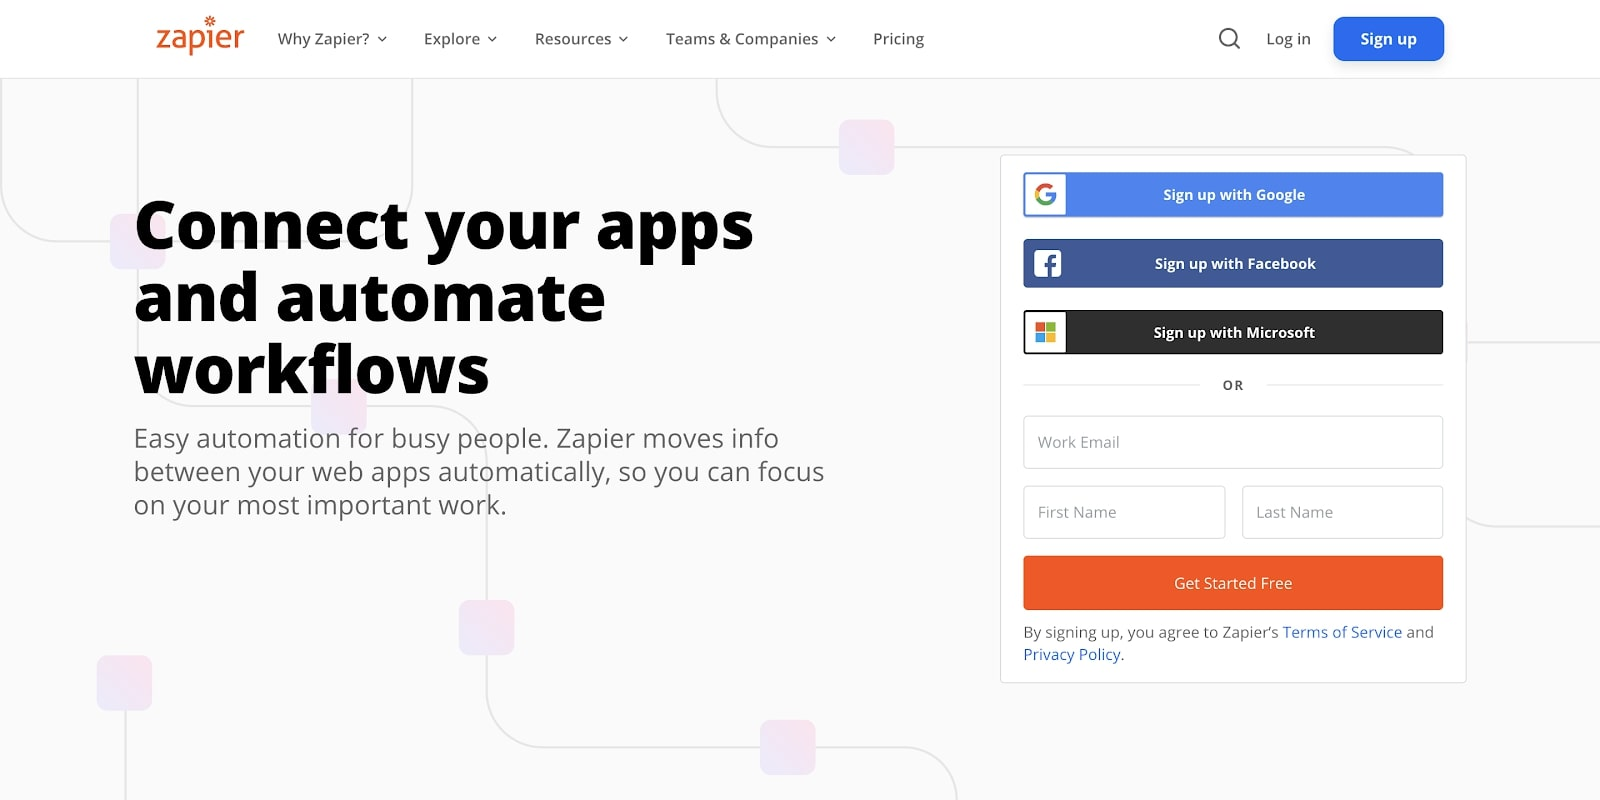 An image of the Zapier home page.